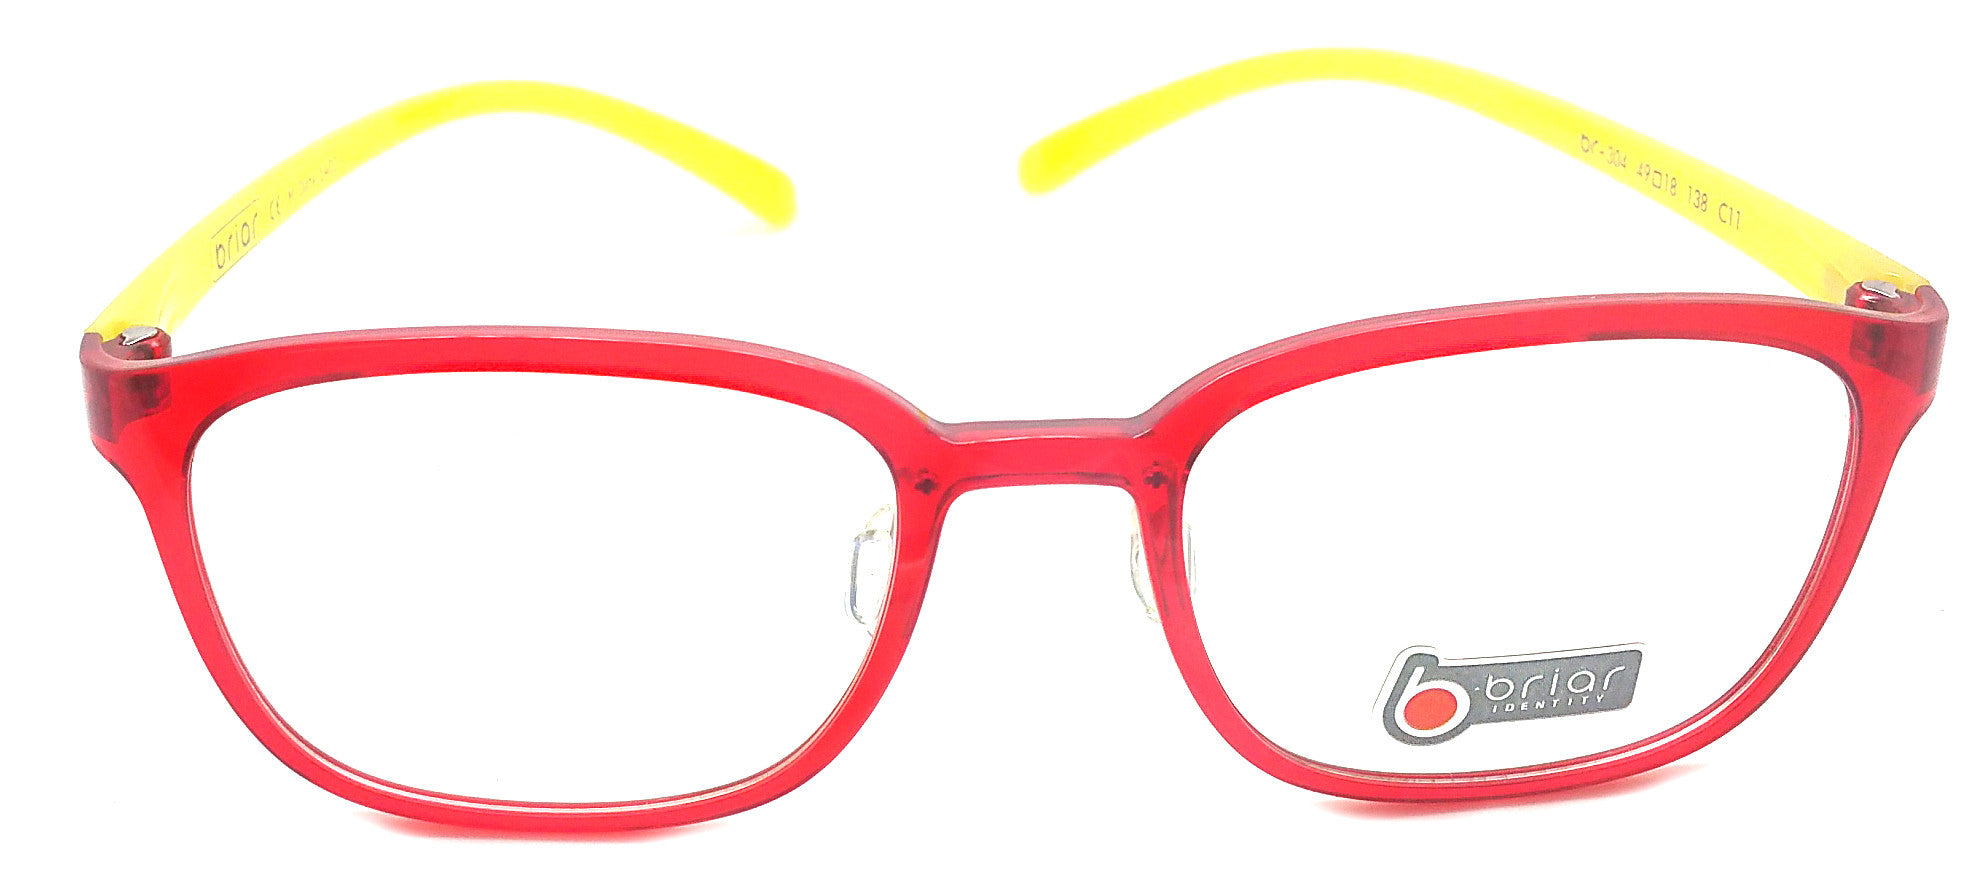 Briar Eyeglasses Prescription Frame Super Light, Flexible,  BR 304 C11